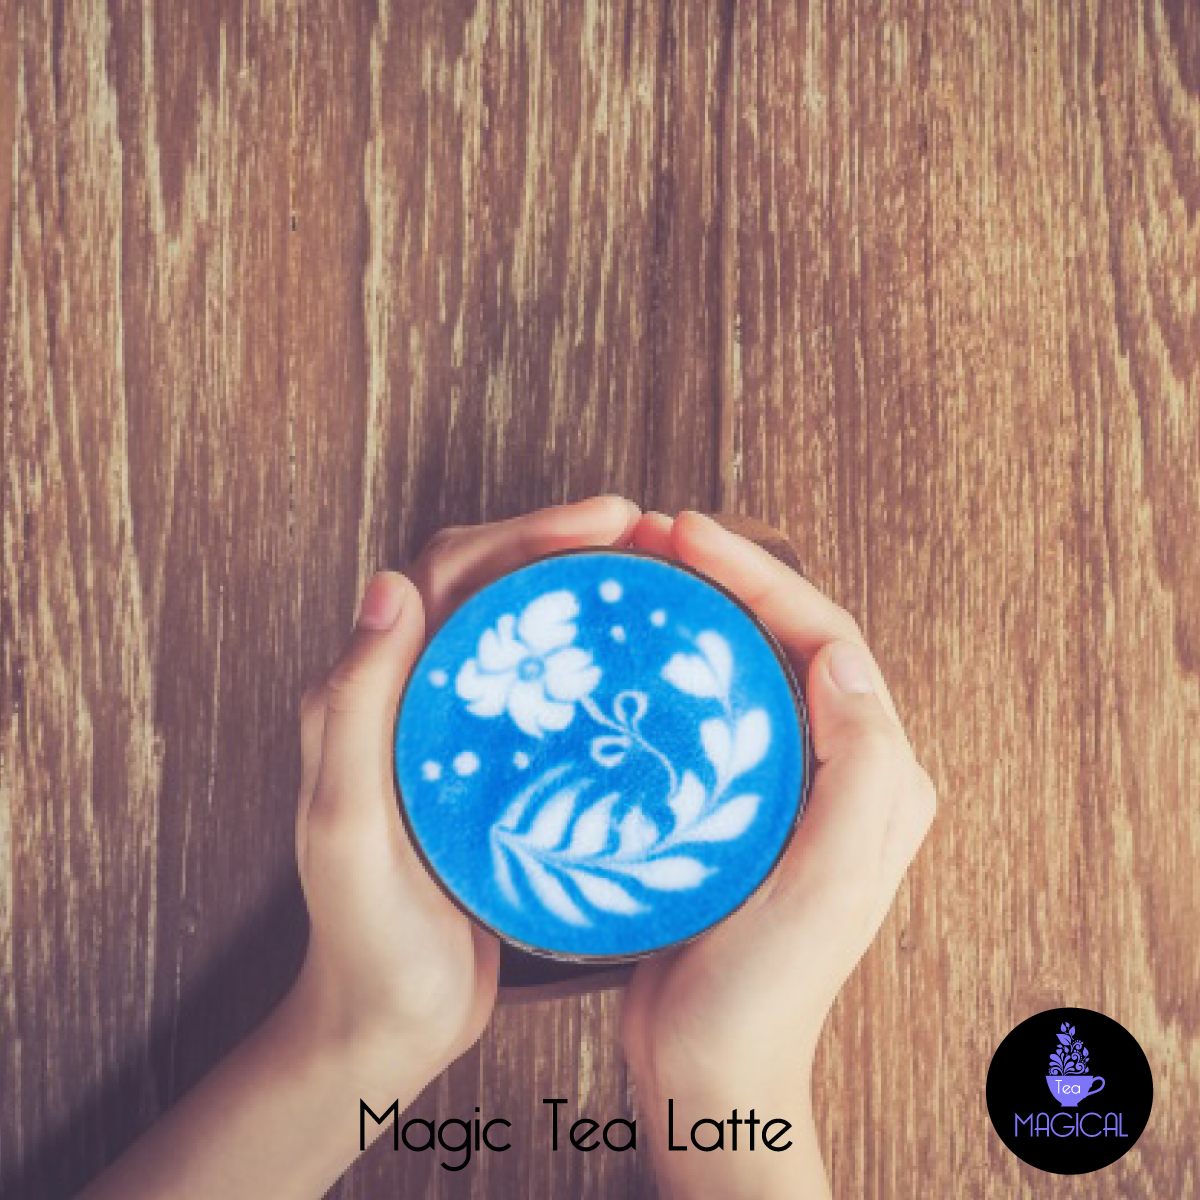 Magic Tea Latte